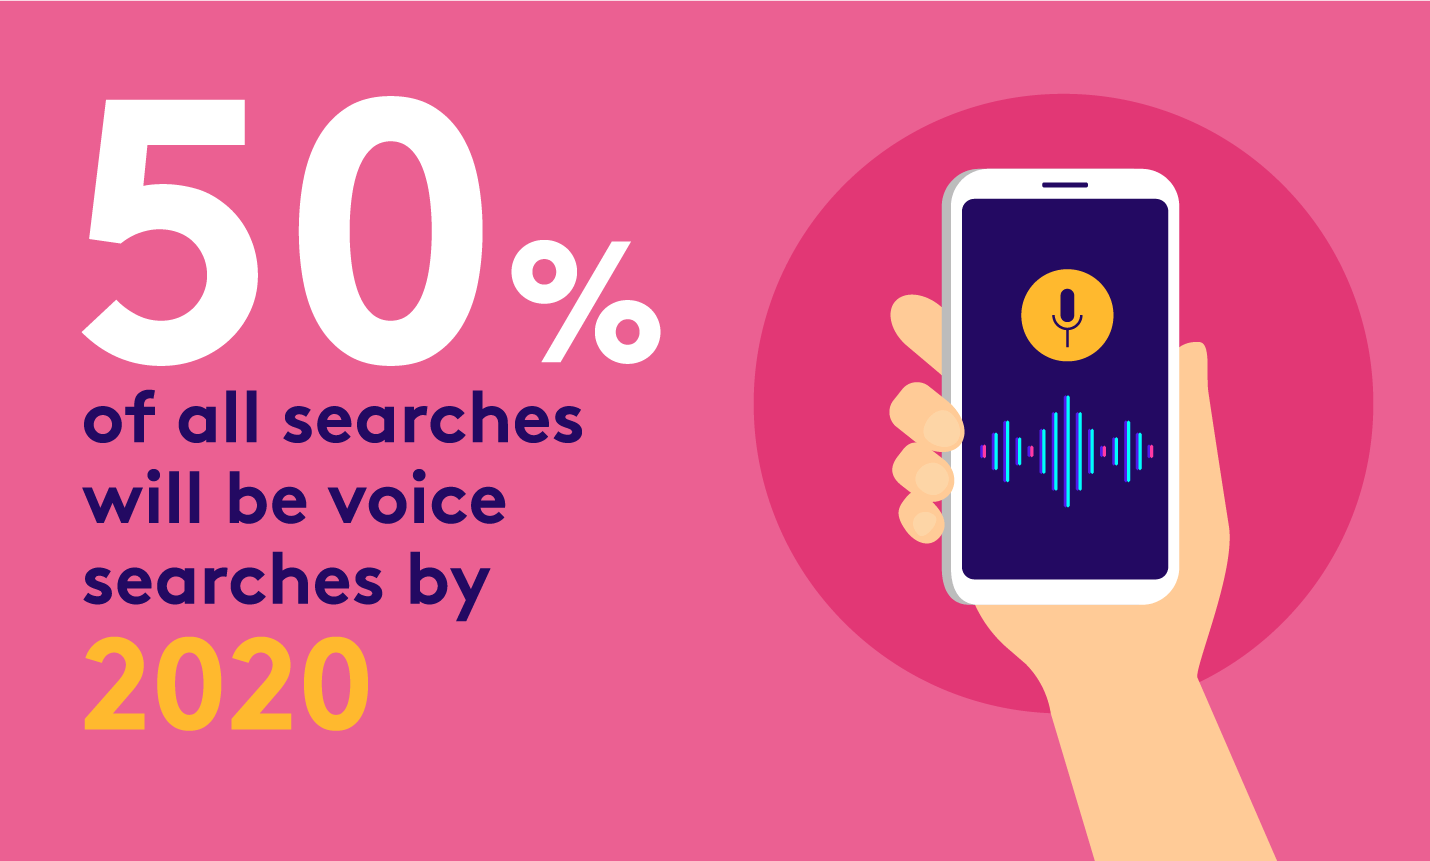 voice command app - 50% of all searches will be voice